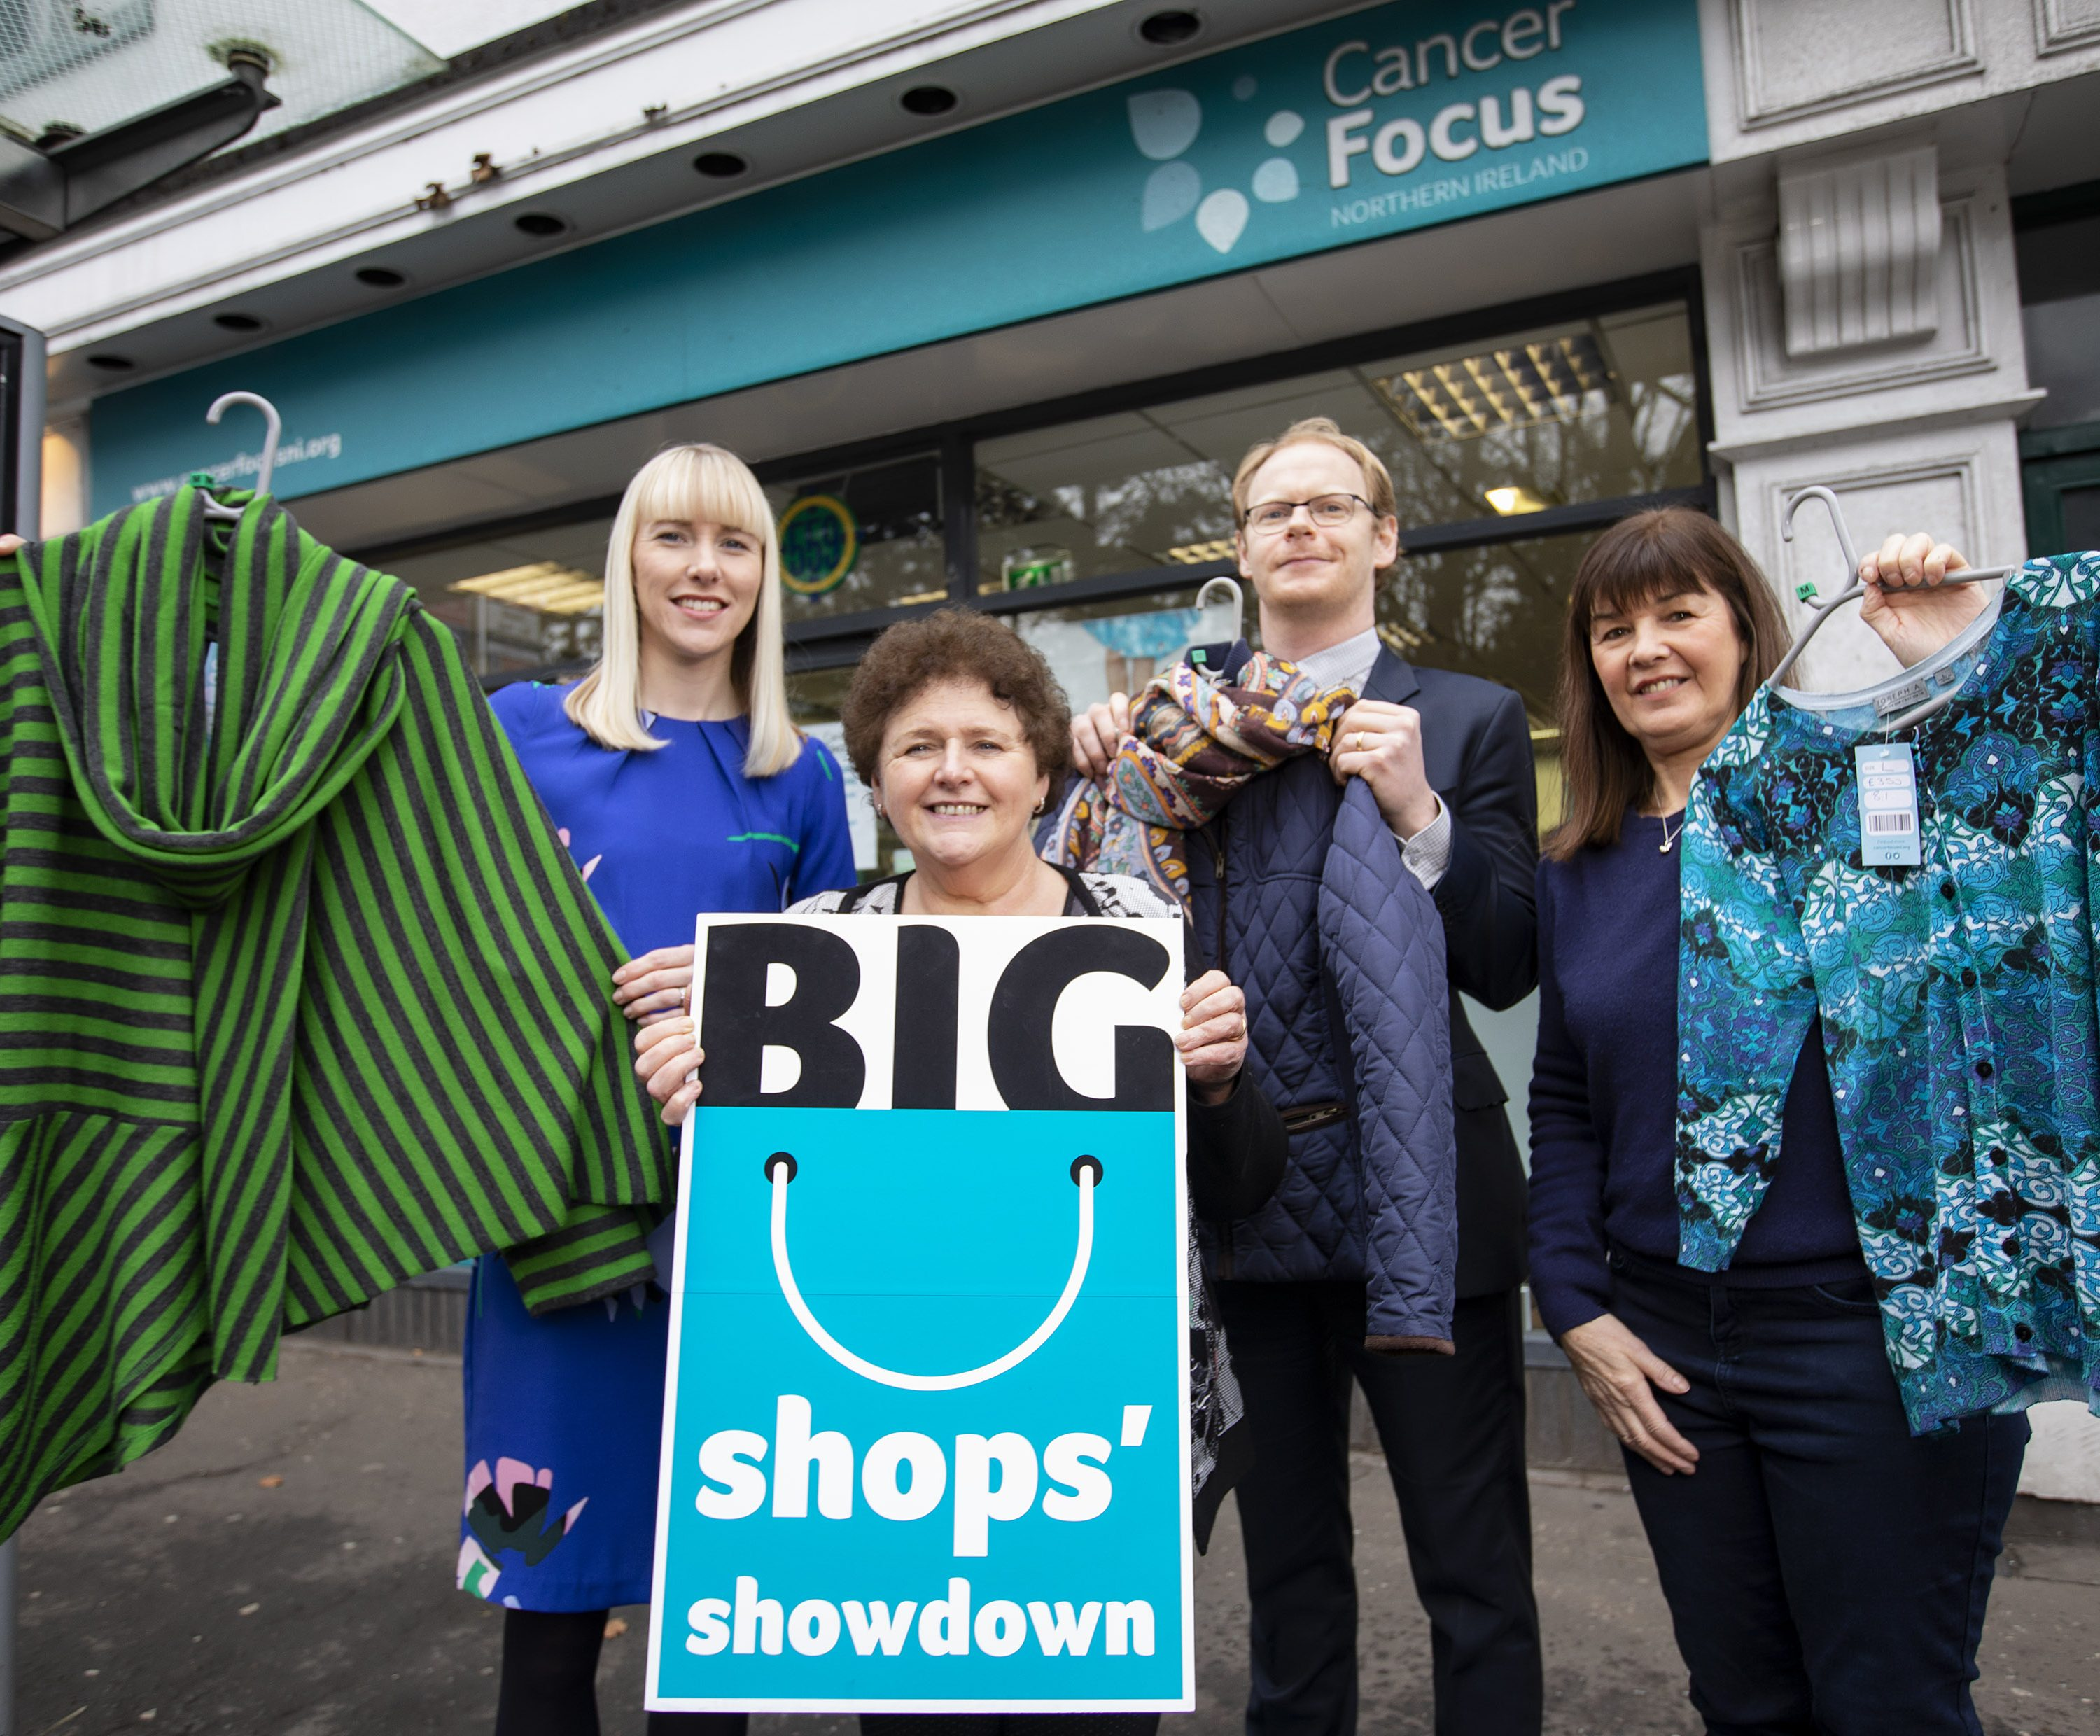 Big Shops Showdown 2019 (6)